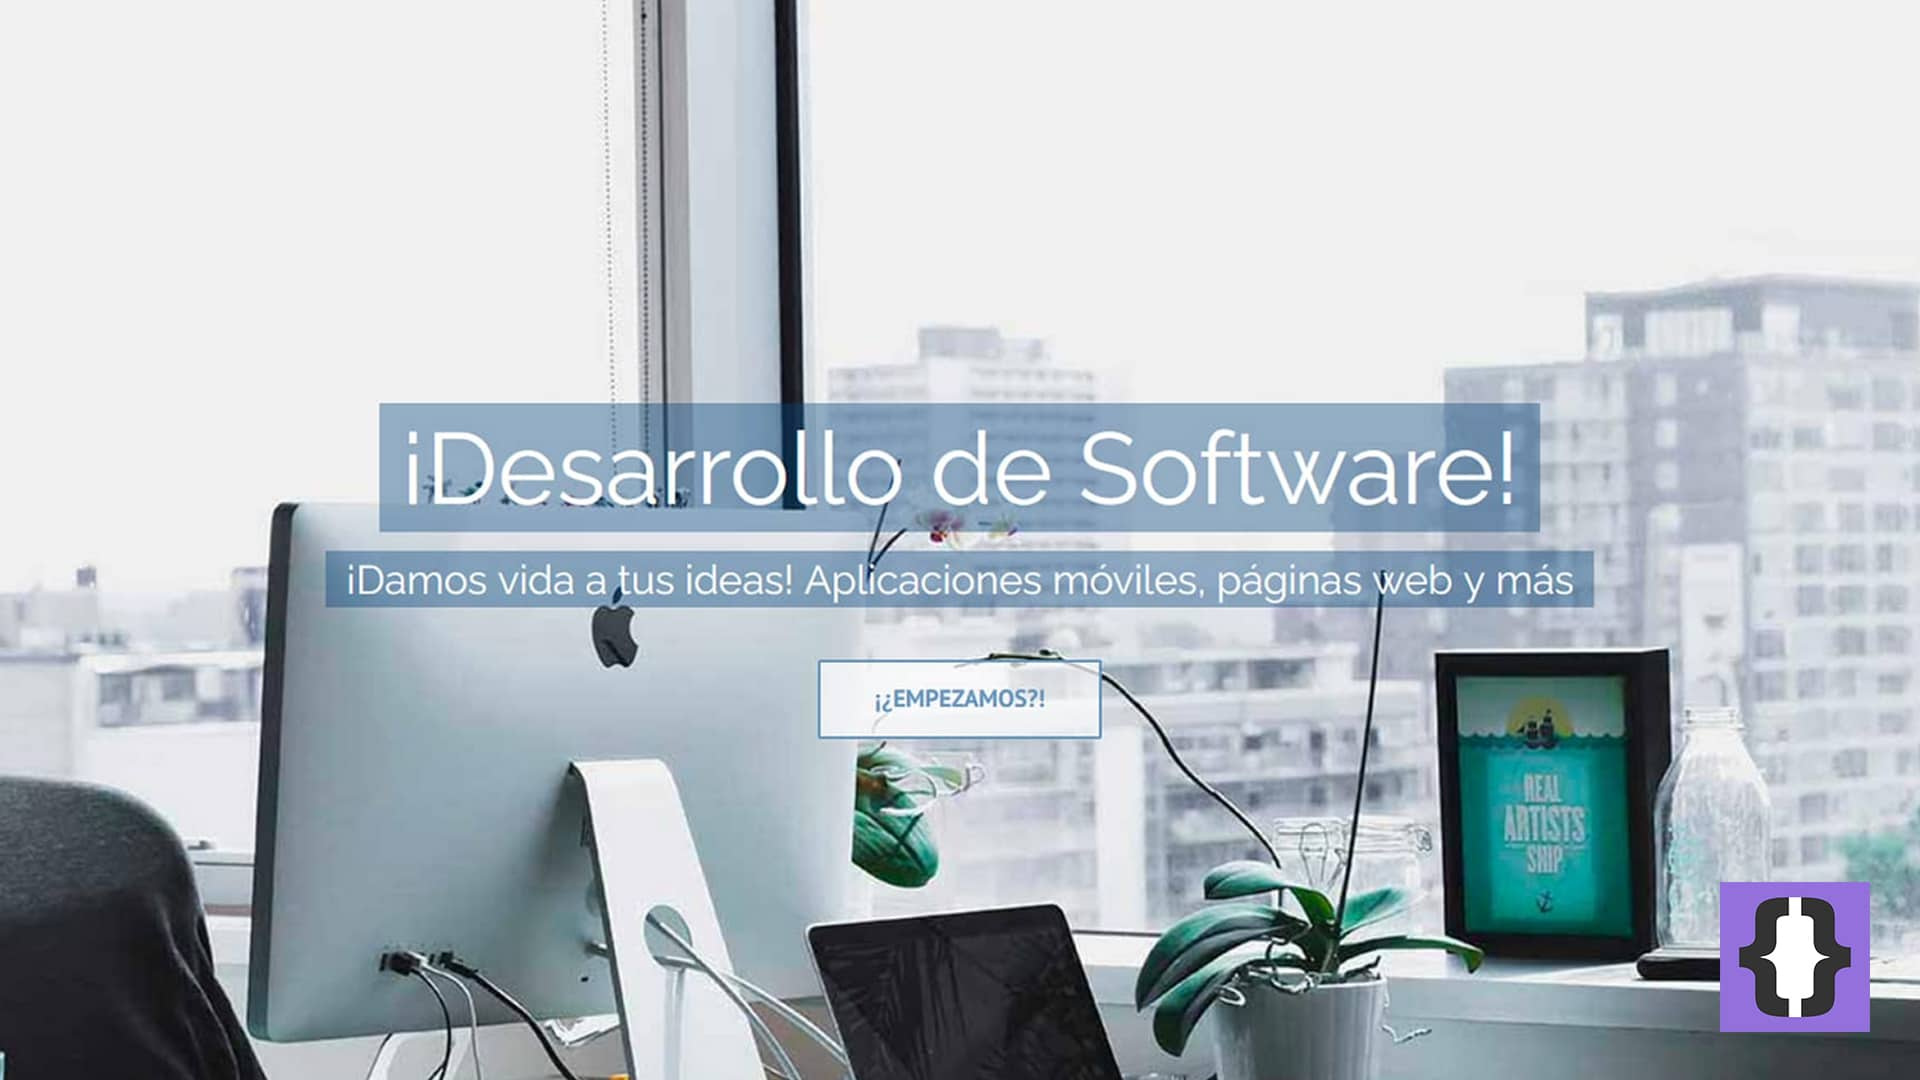 Servicio de desarrollo de software de transformación digital.